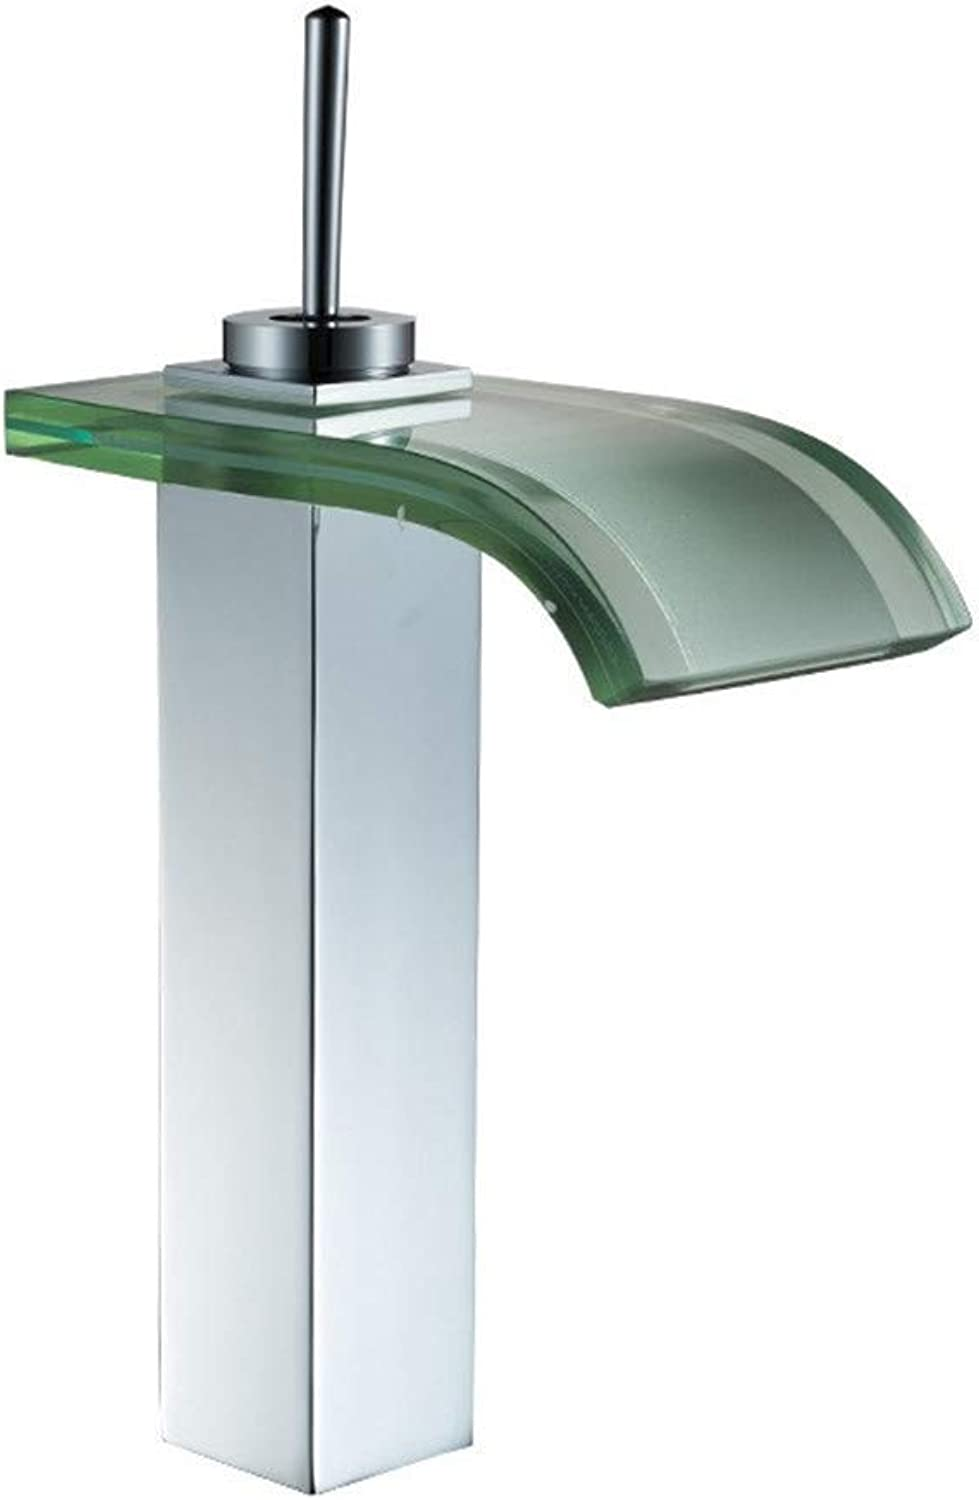 Oudan Mixing Hot and Cold Taps Bathroom Basin Faucet Plated Glass Waterfall Basin Faucet Mixer (color   -, Size   -)